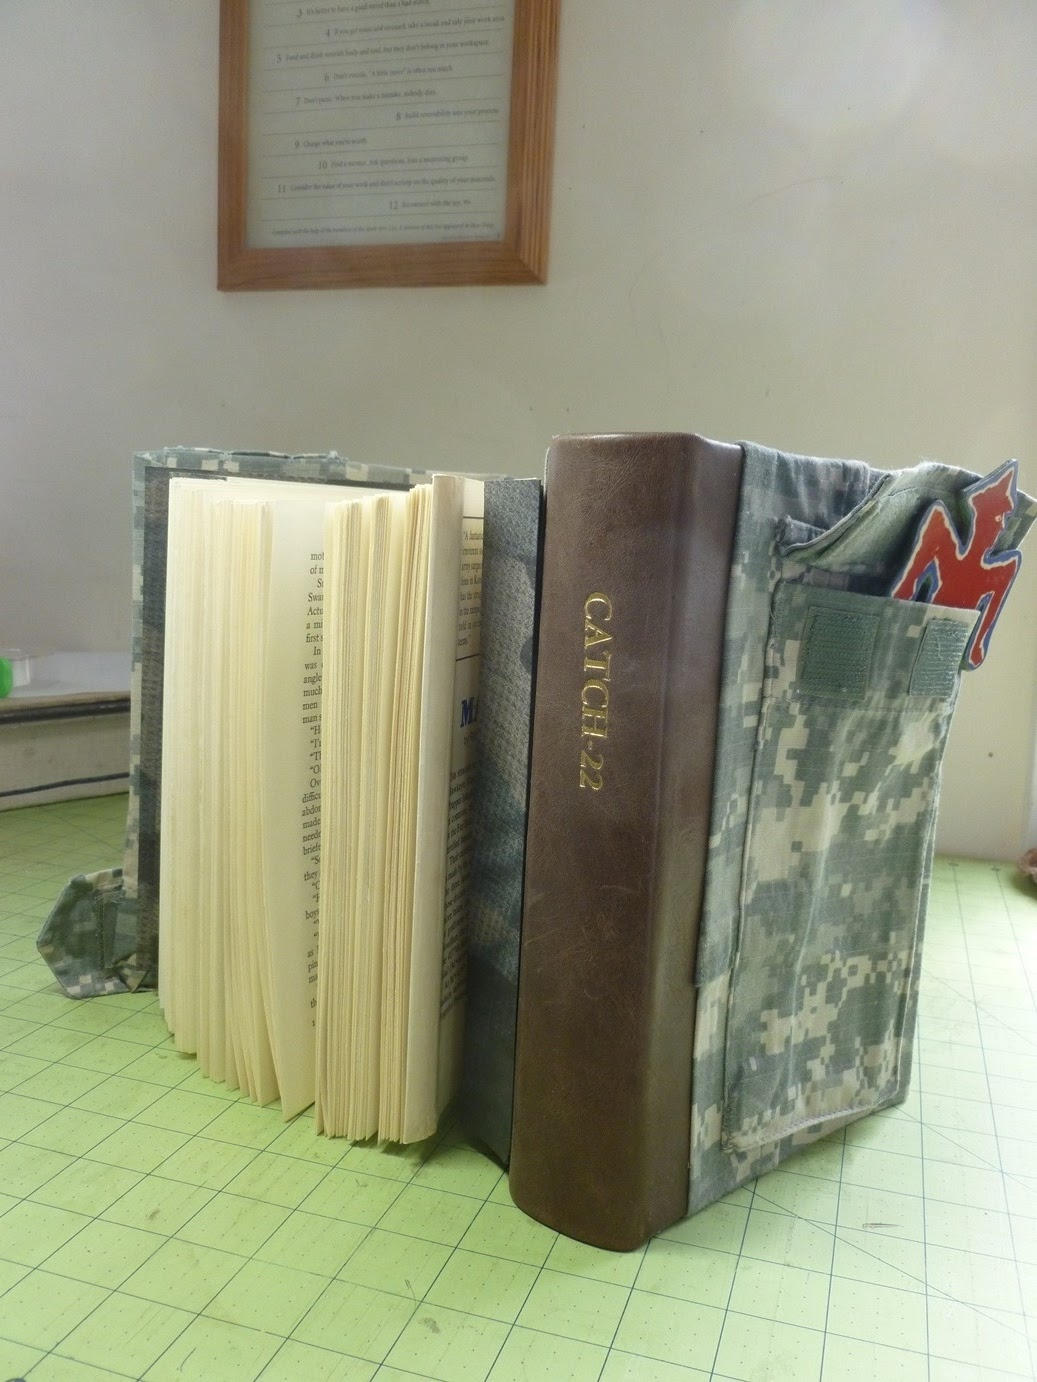 Heritage Book and Bible Repair: Catch-22/M*A*S*H